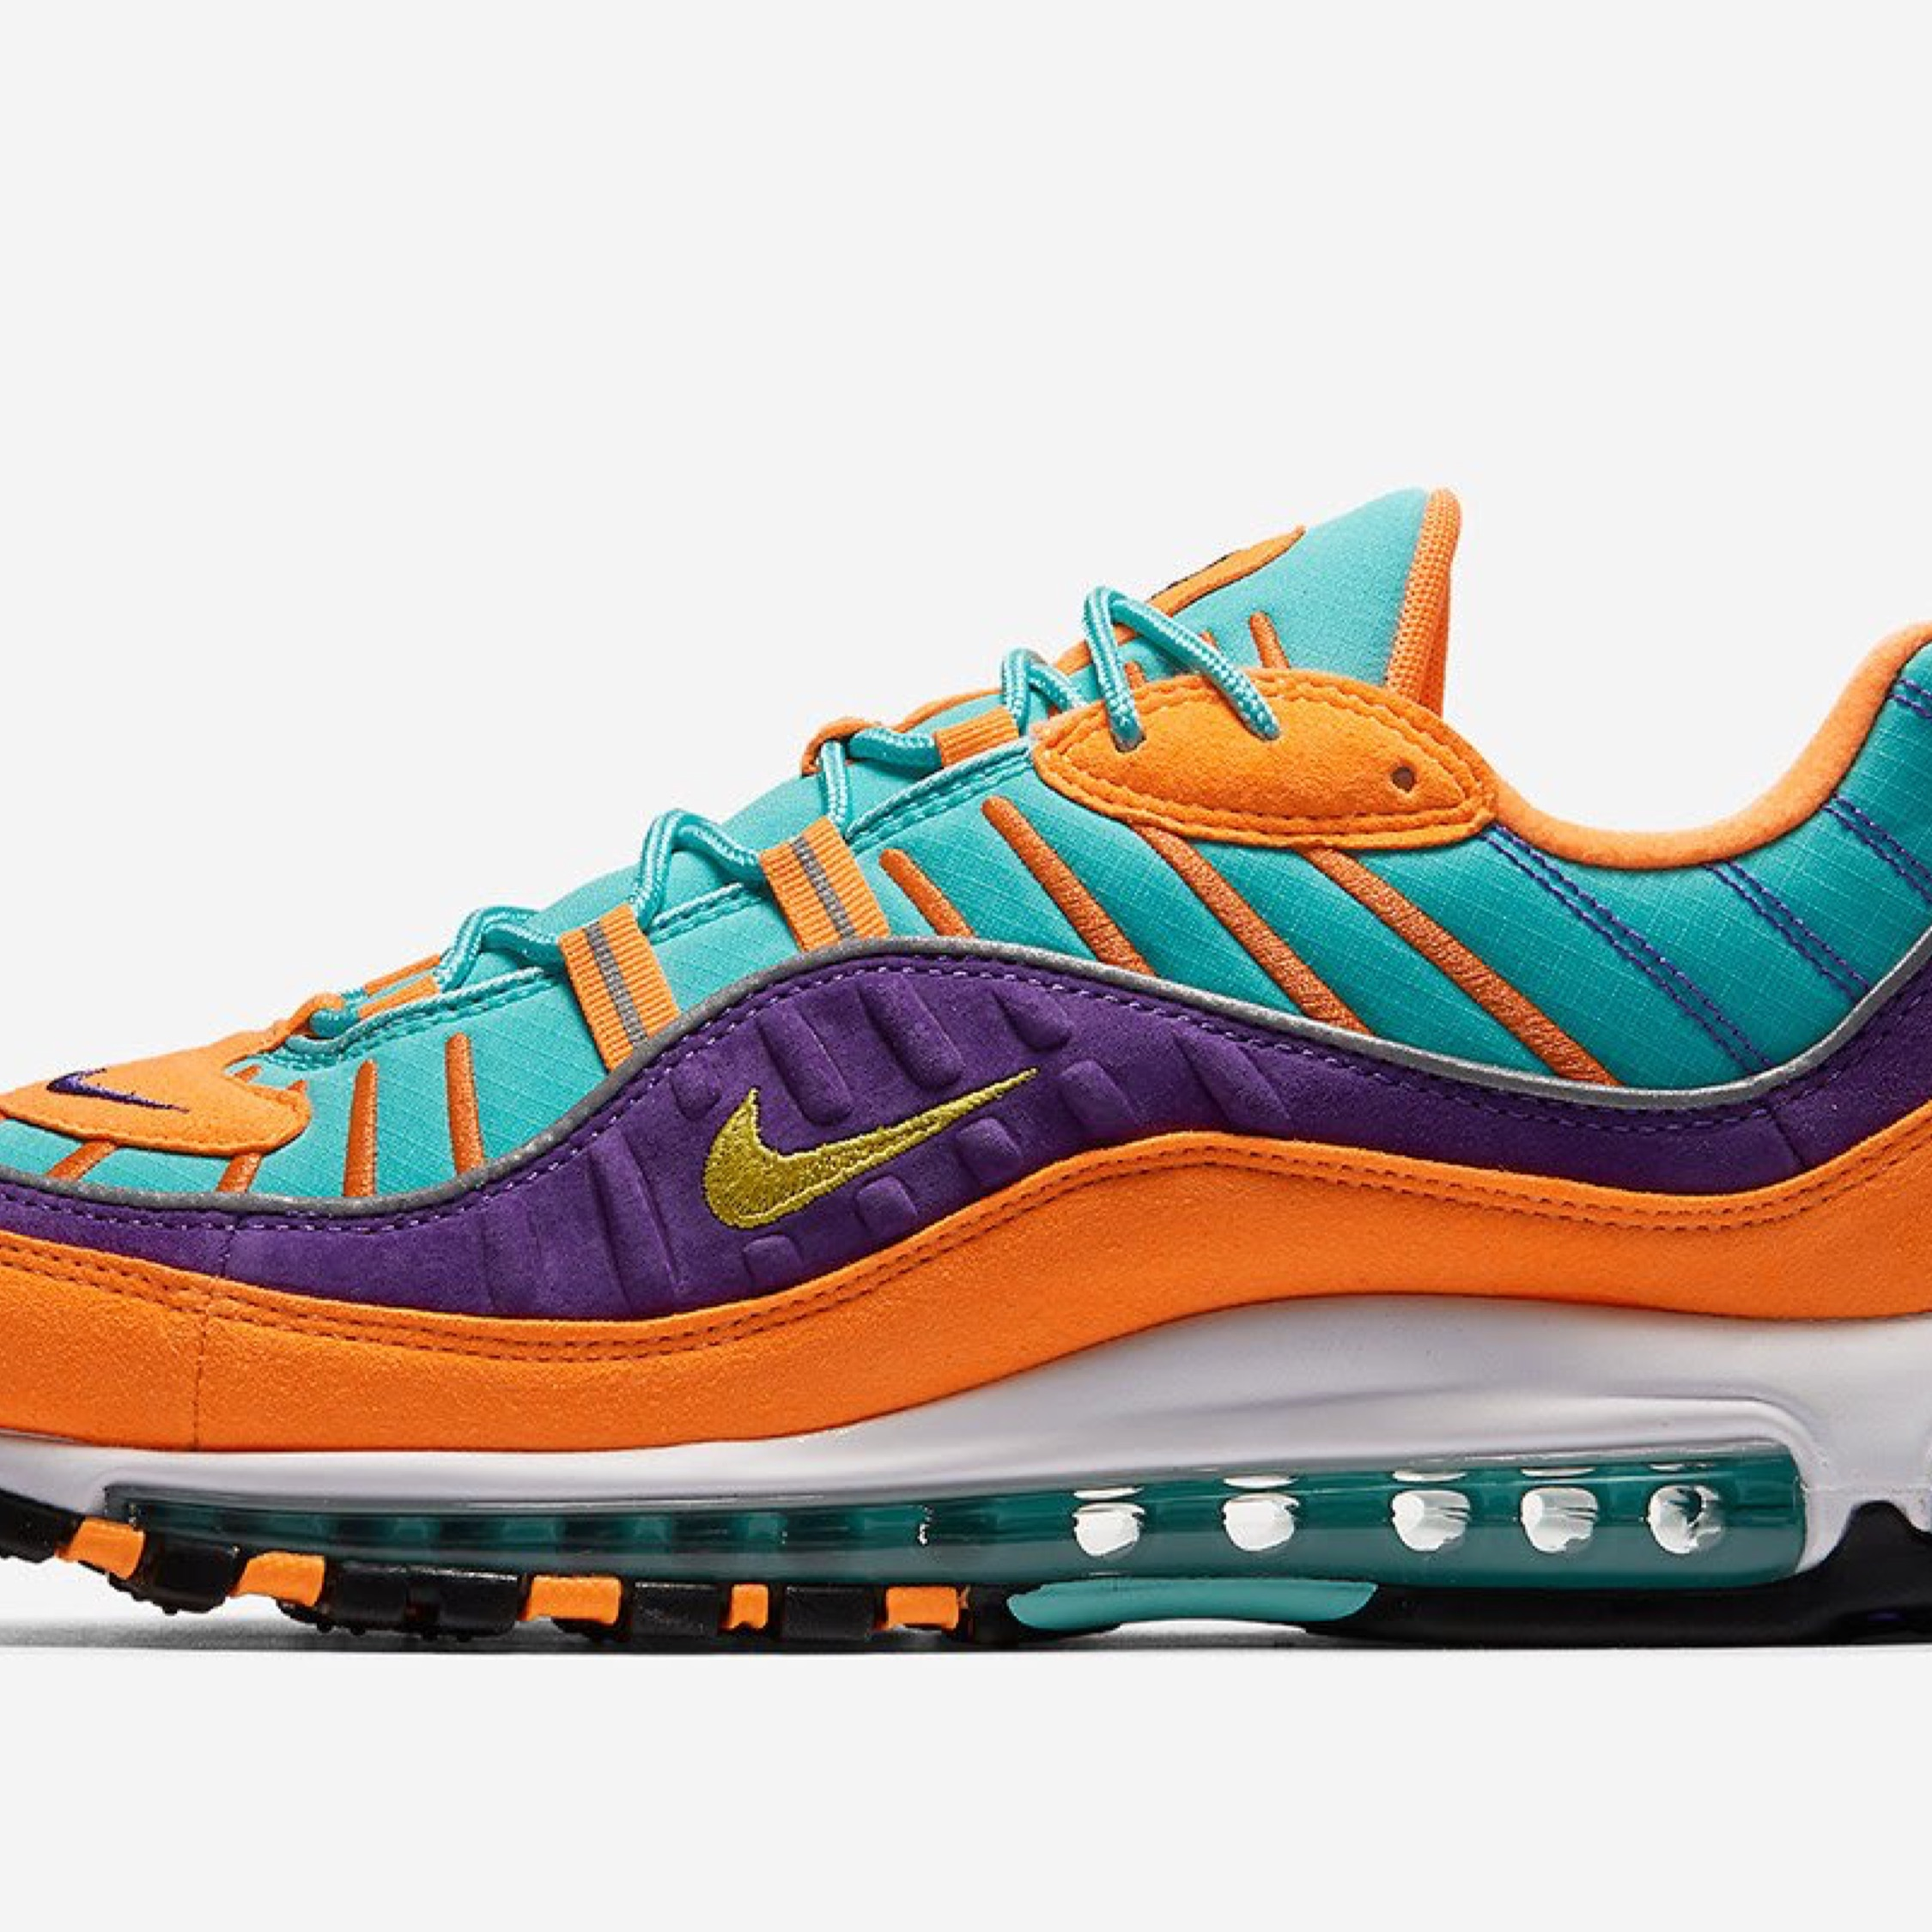 factory price 96518 01d45 Air Max 98 Cone Sz Us 11.5. Stockx Verified.